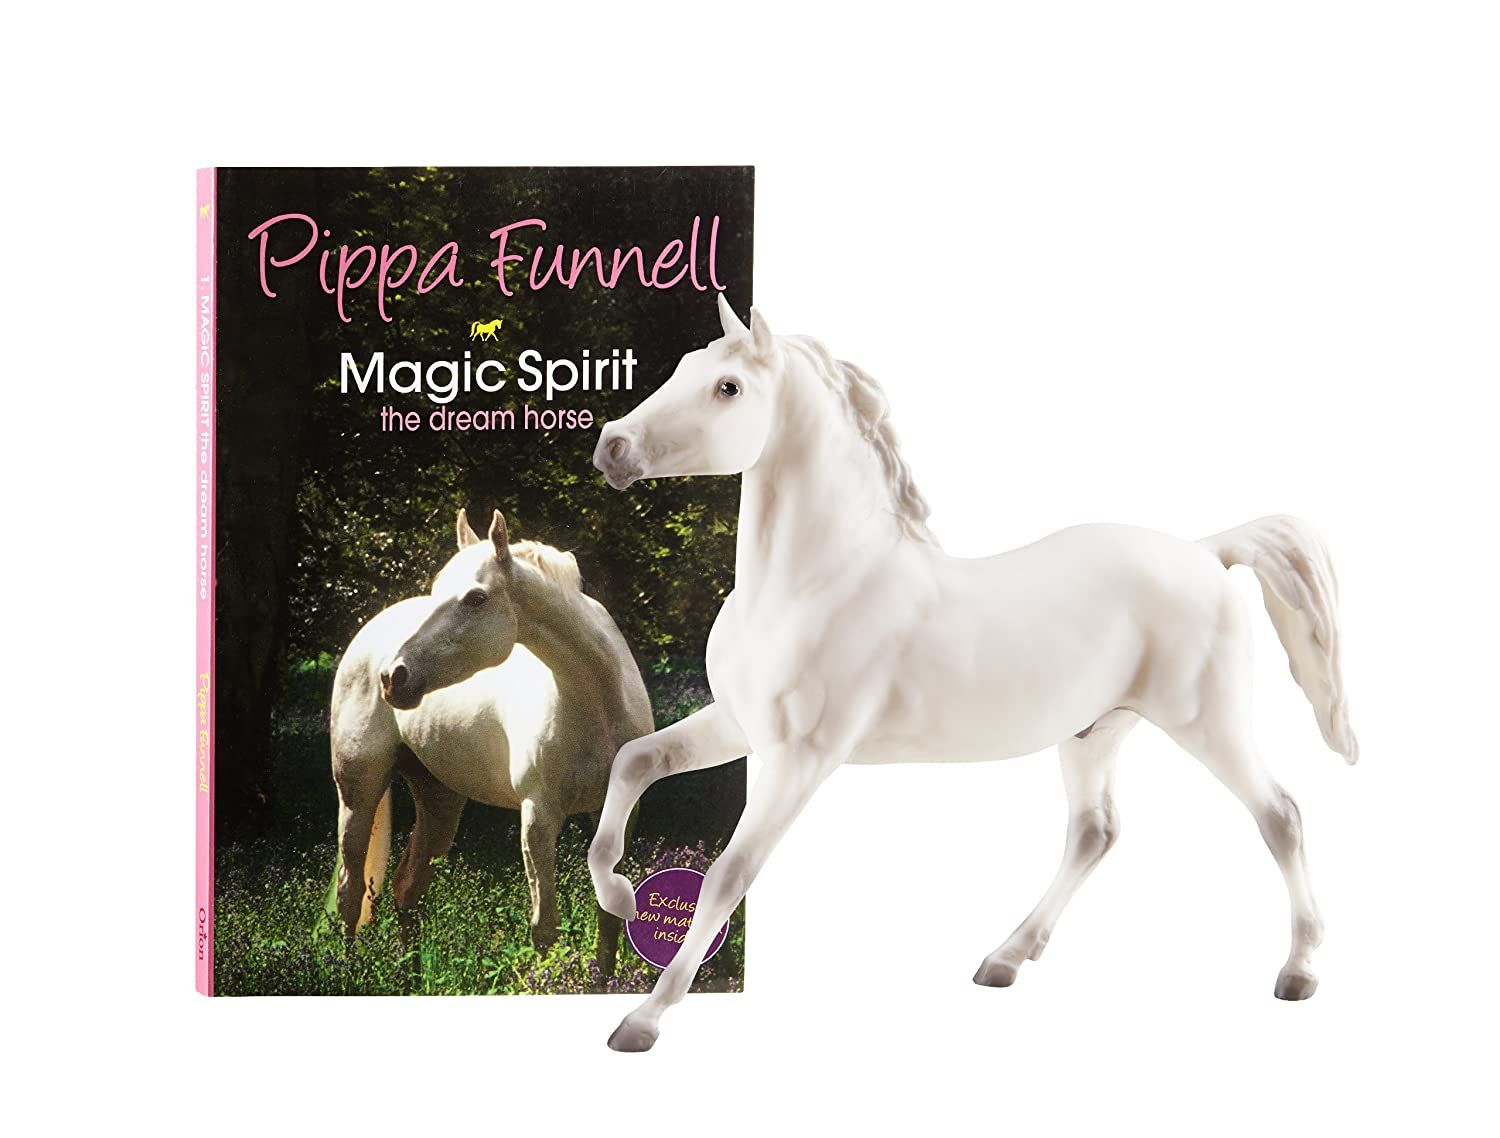 Breyer Pippa Funnell's Magic Spirit Horse and Book